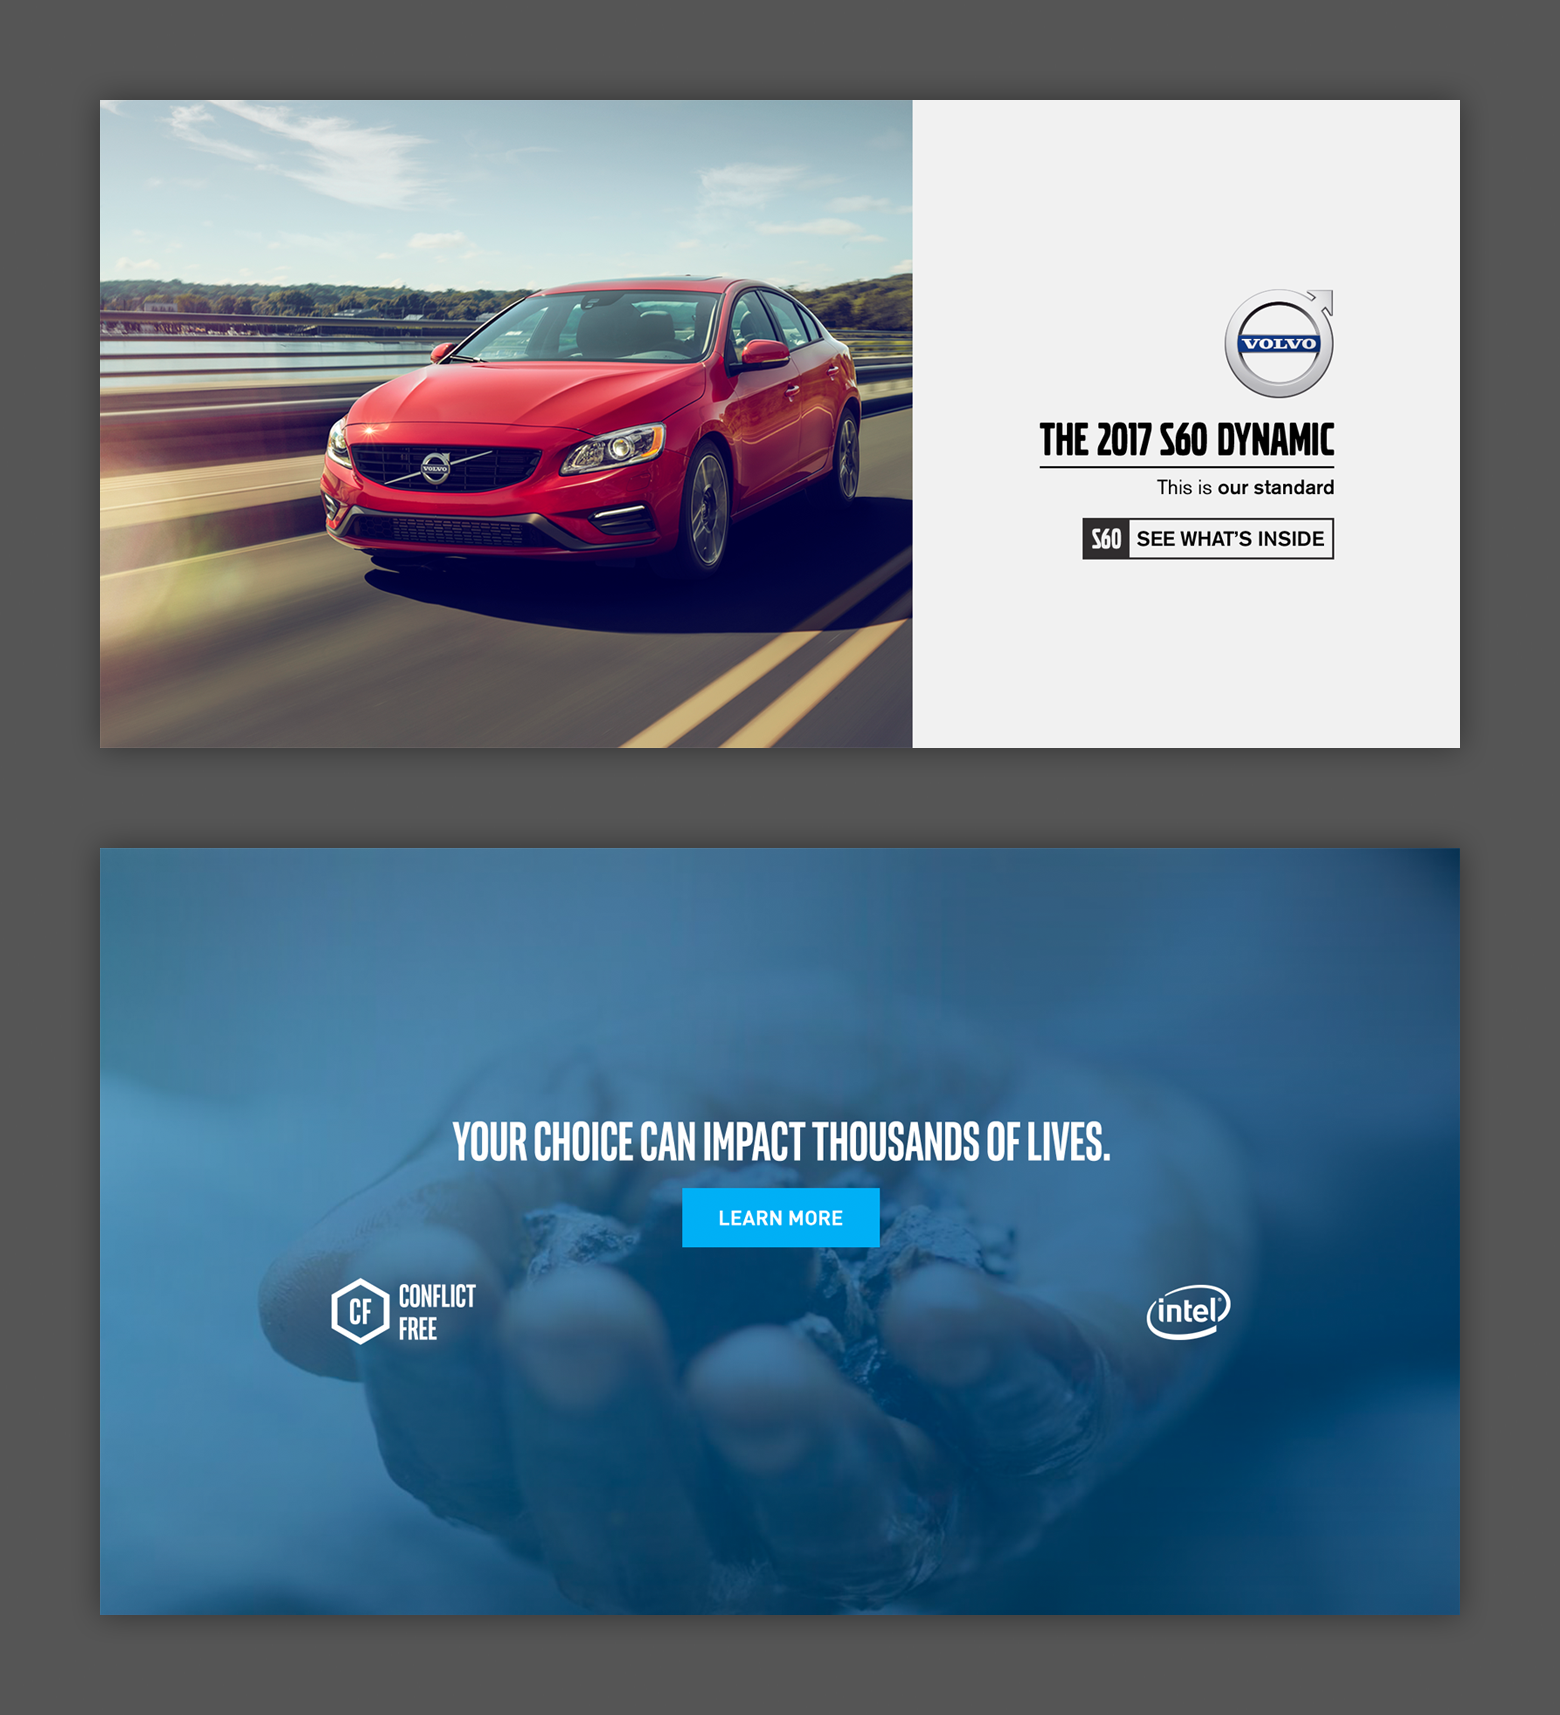 Volvo ad depicting a vehicle and an Intel ad depicting a hand holding rocks